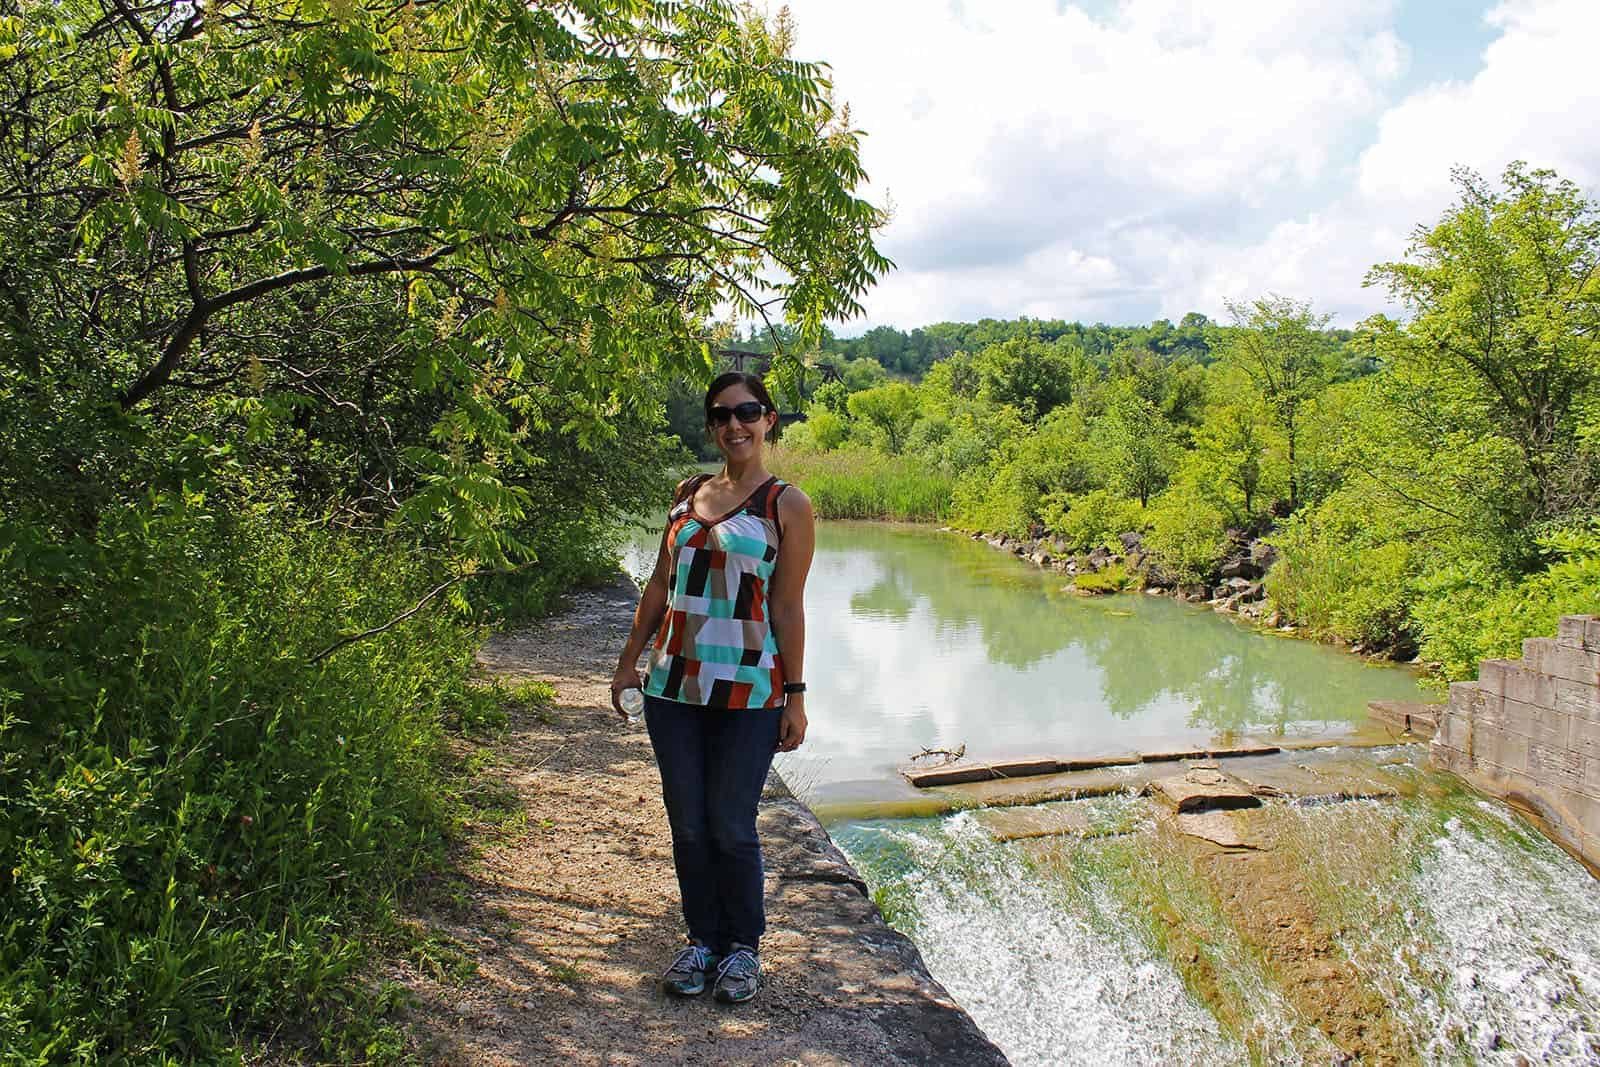 Bruce Trail Hike - St. Catharines